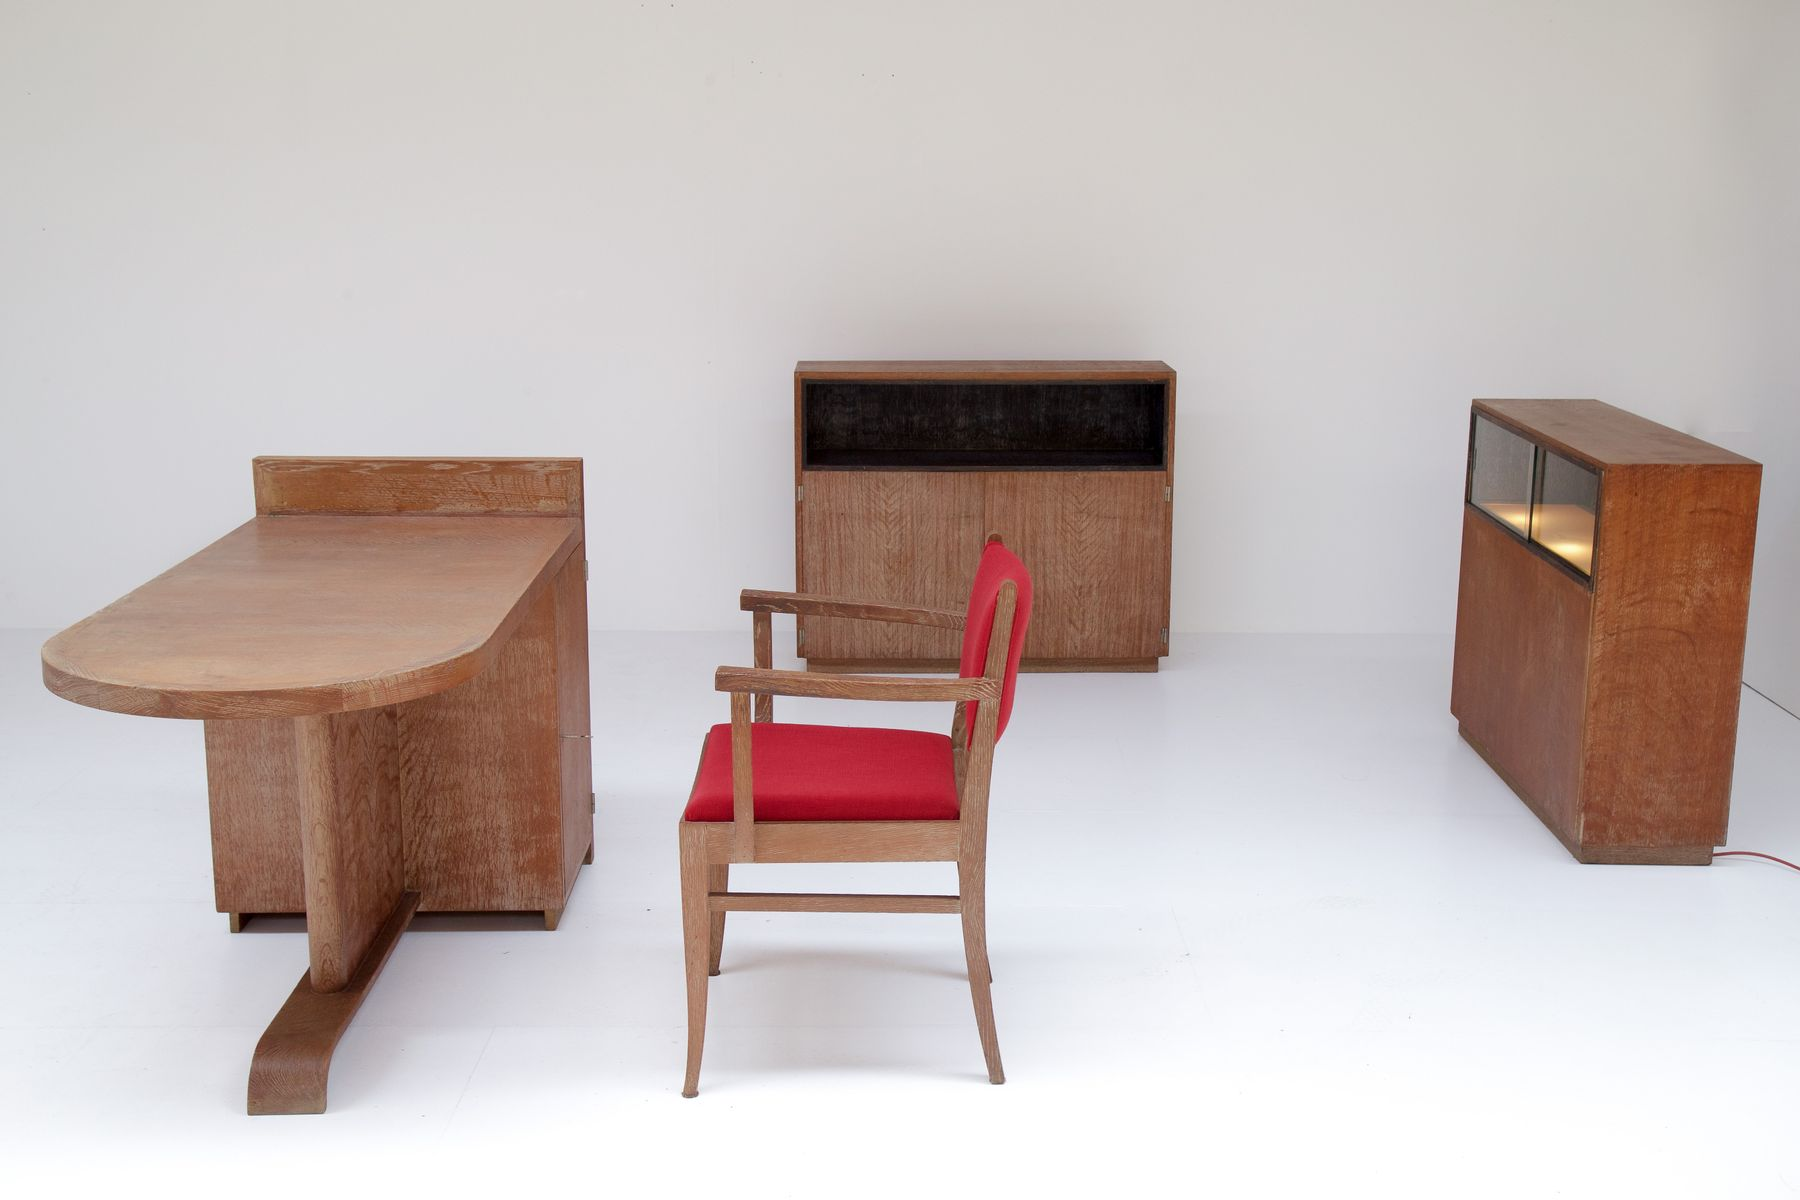 set de bureau de de coene fr res belgique 1930s en vente sur pamono. Black Bedroom Furniture Sets. Home Design Ideas